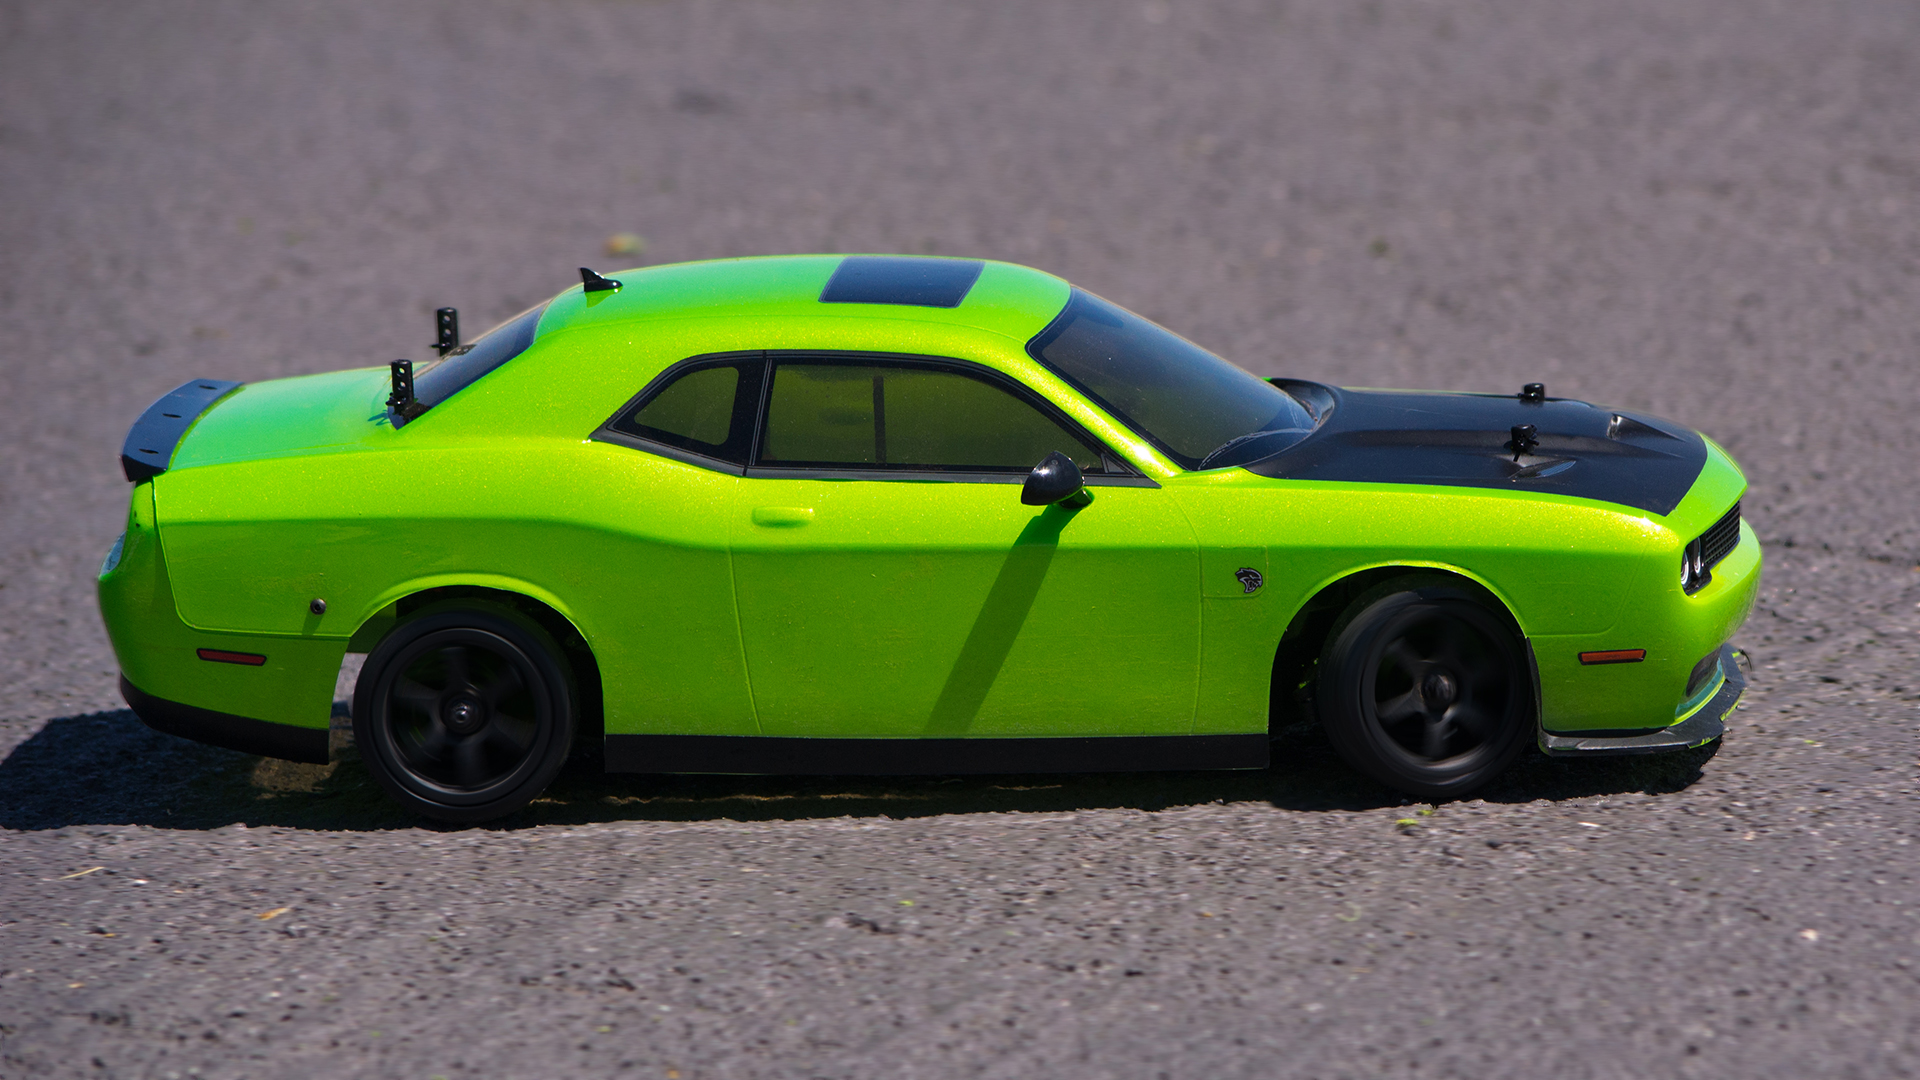 Race Car Wallpaper Images How To Get Into Hobby Rc Exploring Rc Drift Cars Tested